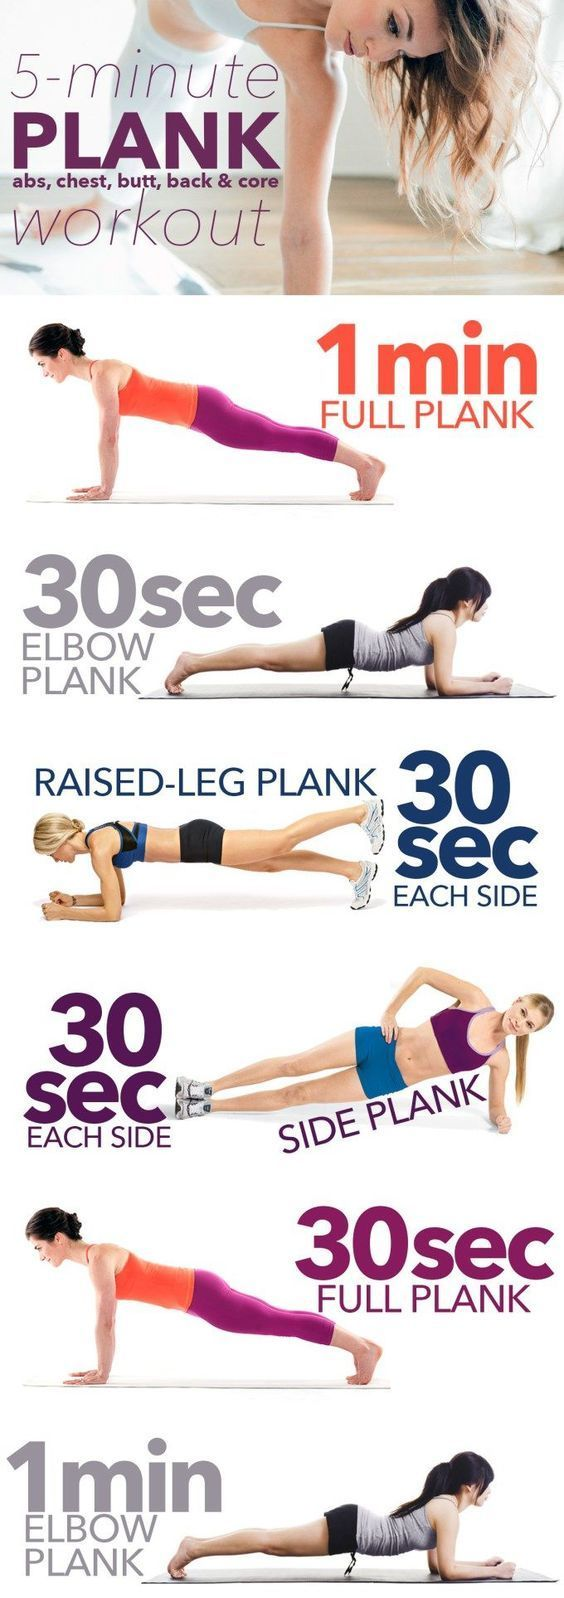 5 Minute Plank Workout workout exercise exercise ideas exercise tutorials workout tutorials fitness tips